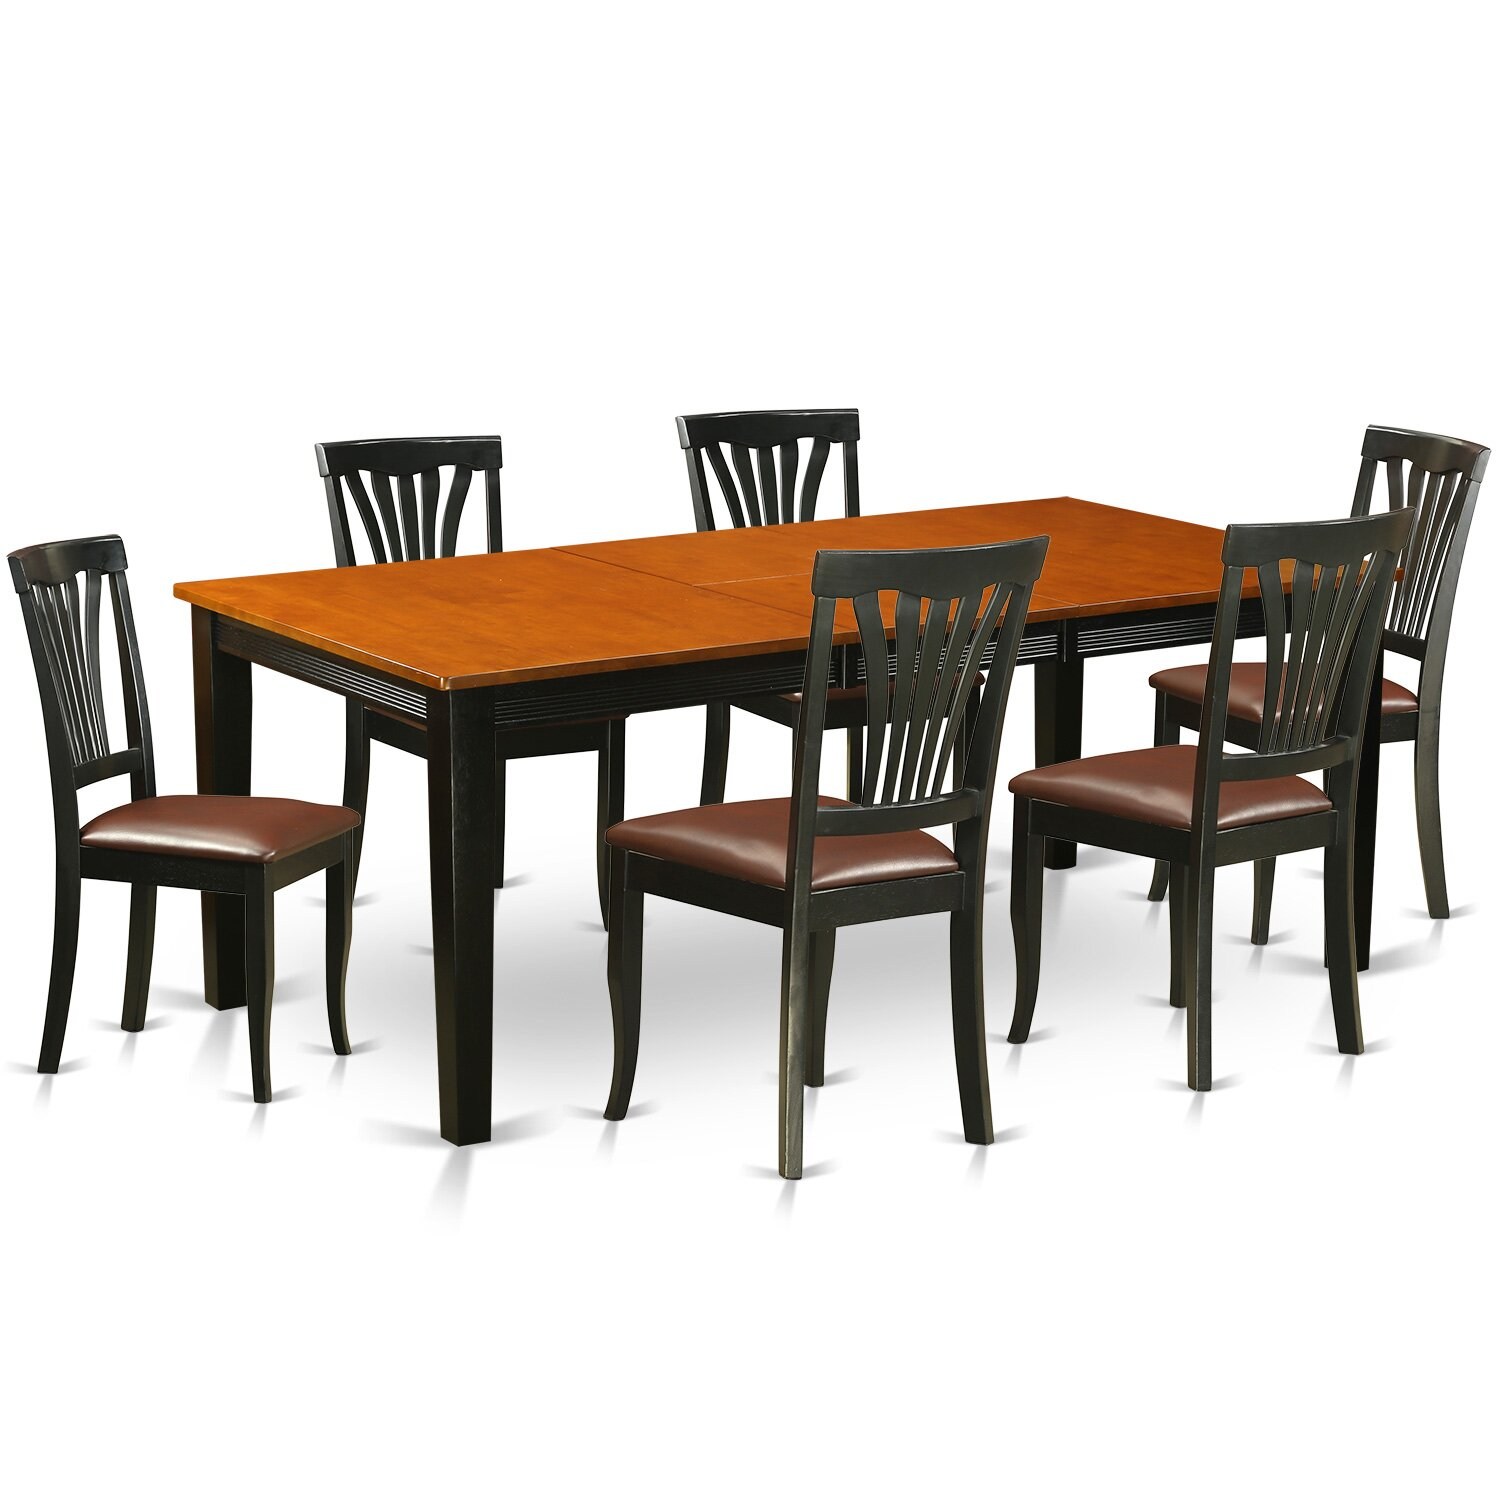 Dining Room Sets Wood: Wooden Importers Quincy 7 Piece Dining Set